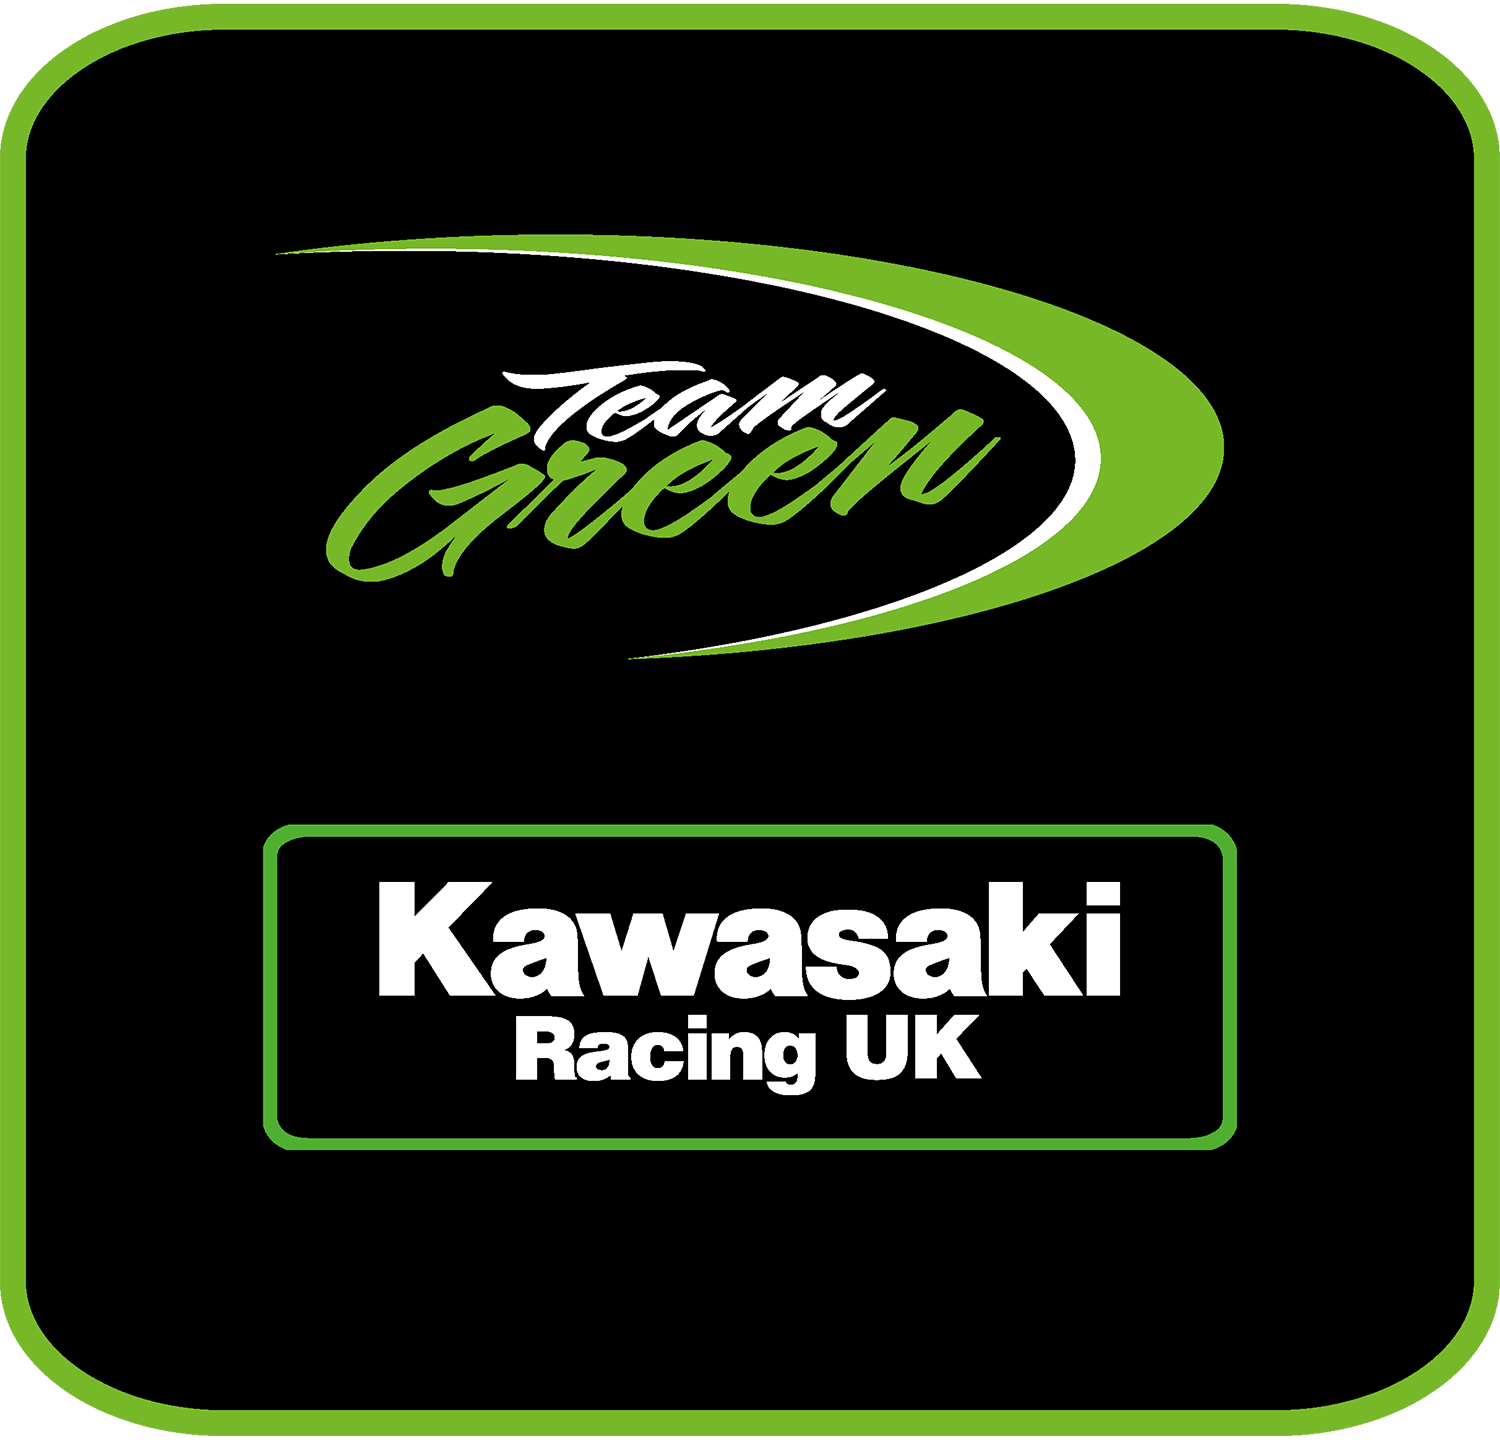 Contact Team Green Racing